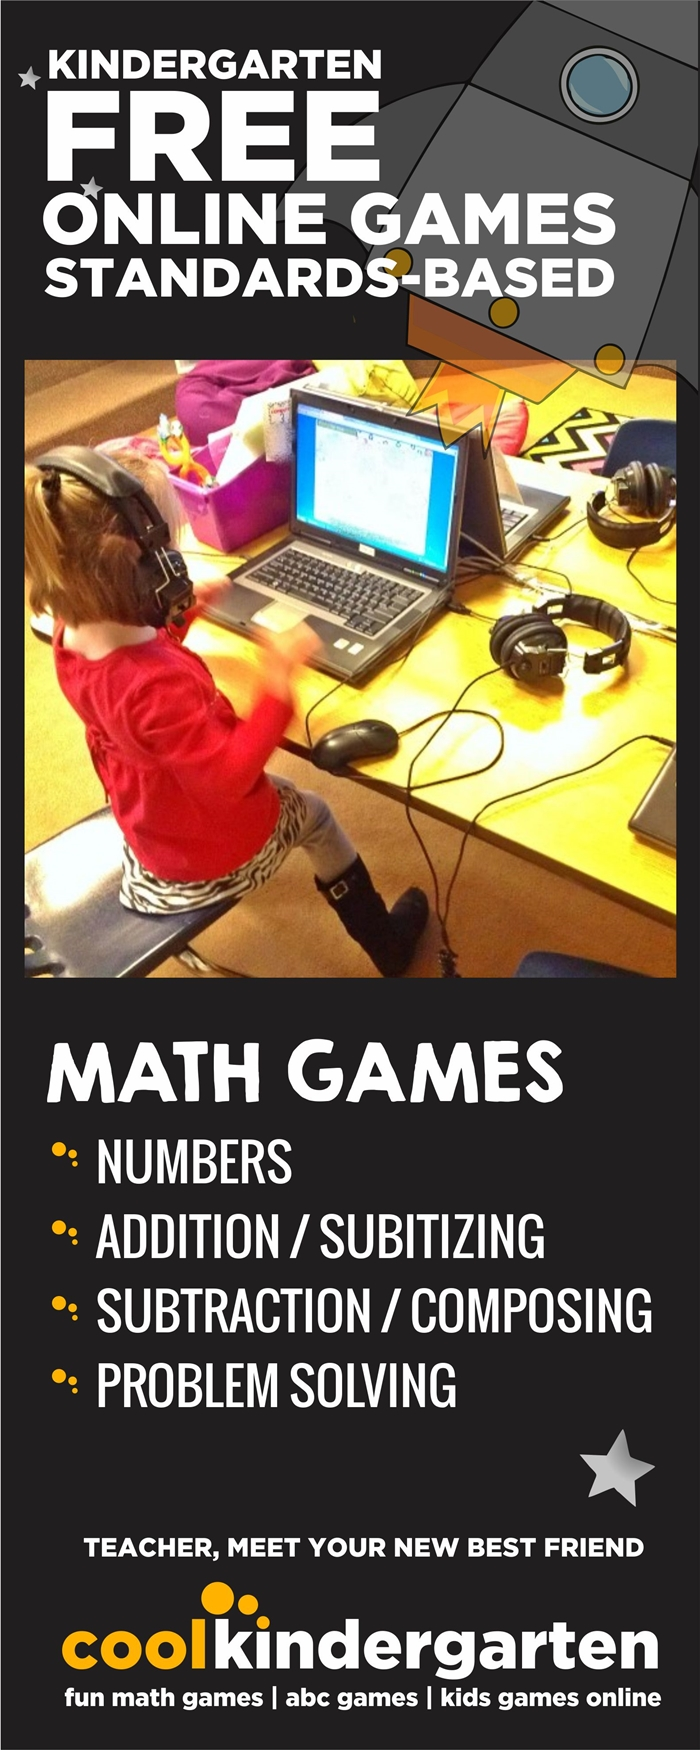 math worksheet : math  cool kindergarten : Online Math Games For Kindergarten